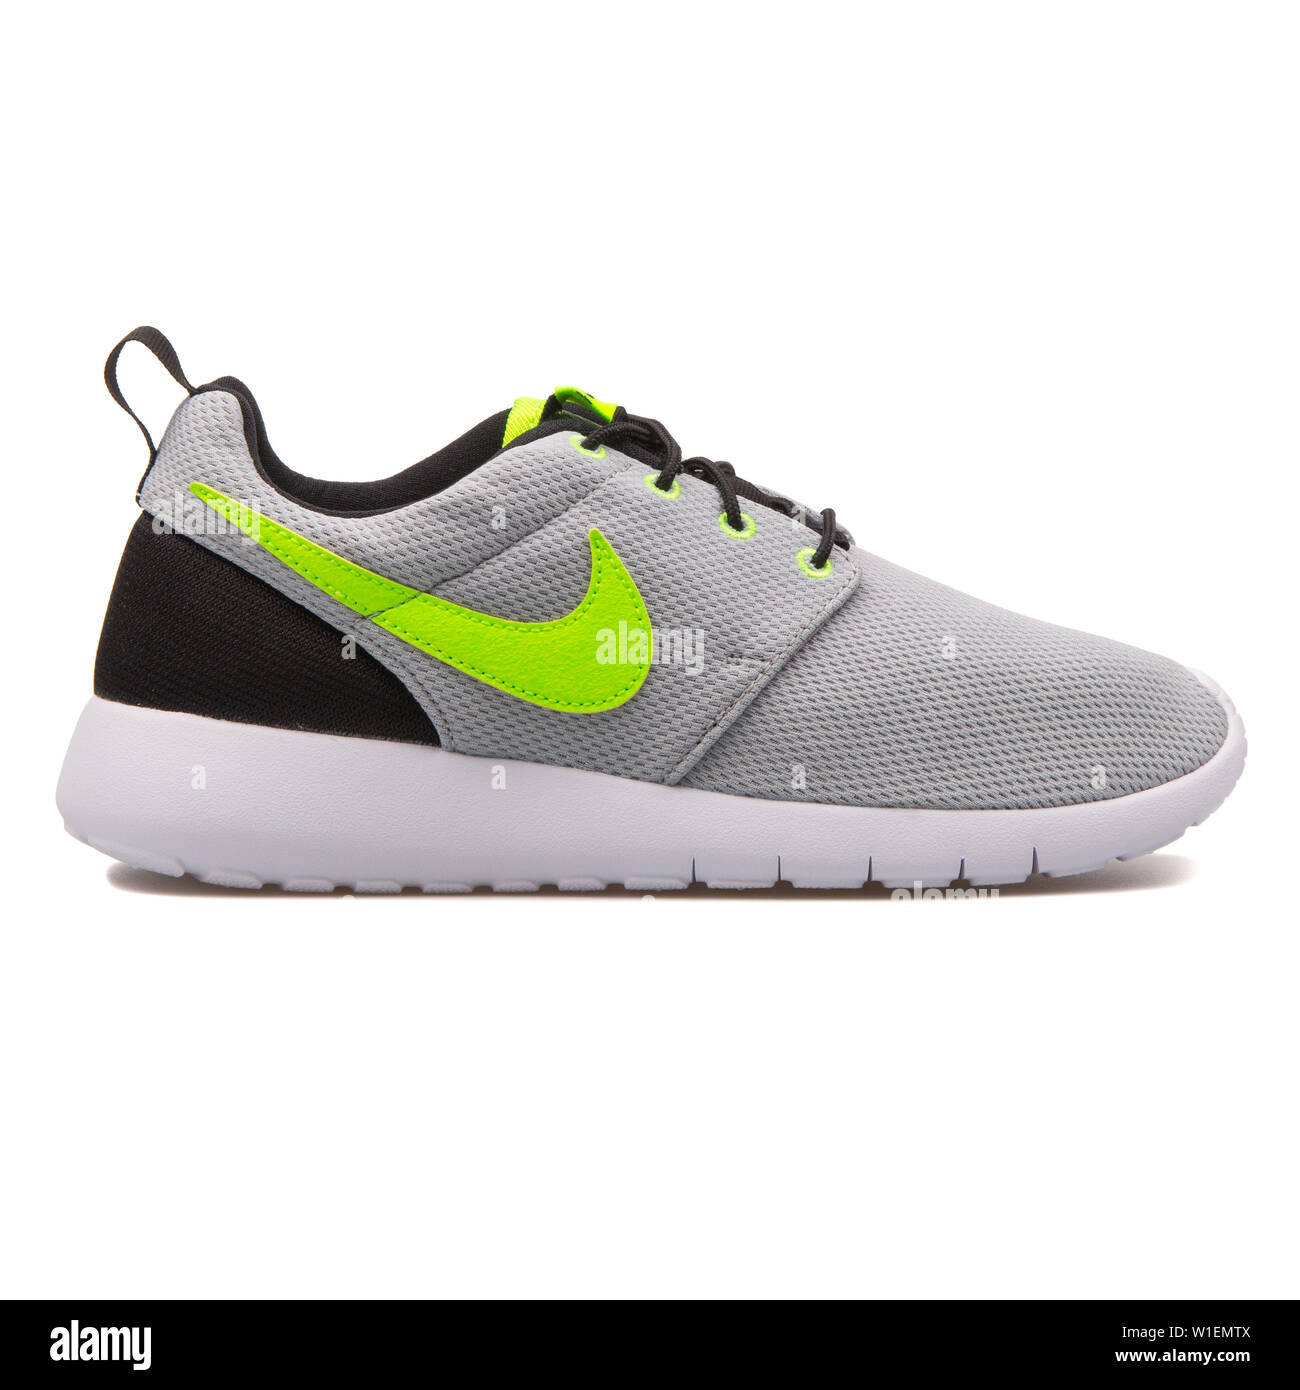 timeless design 3136e 4a820 VIENNA, AUSTRIA - AUGUST 30, 2017: Nike Roshe One grey ...